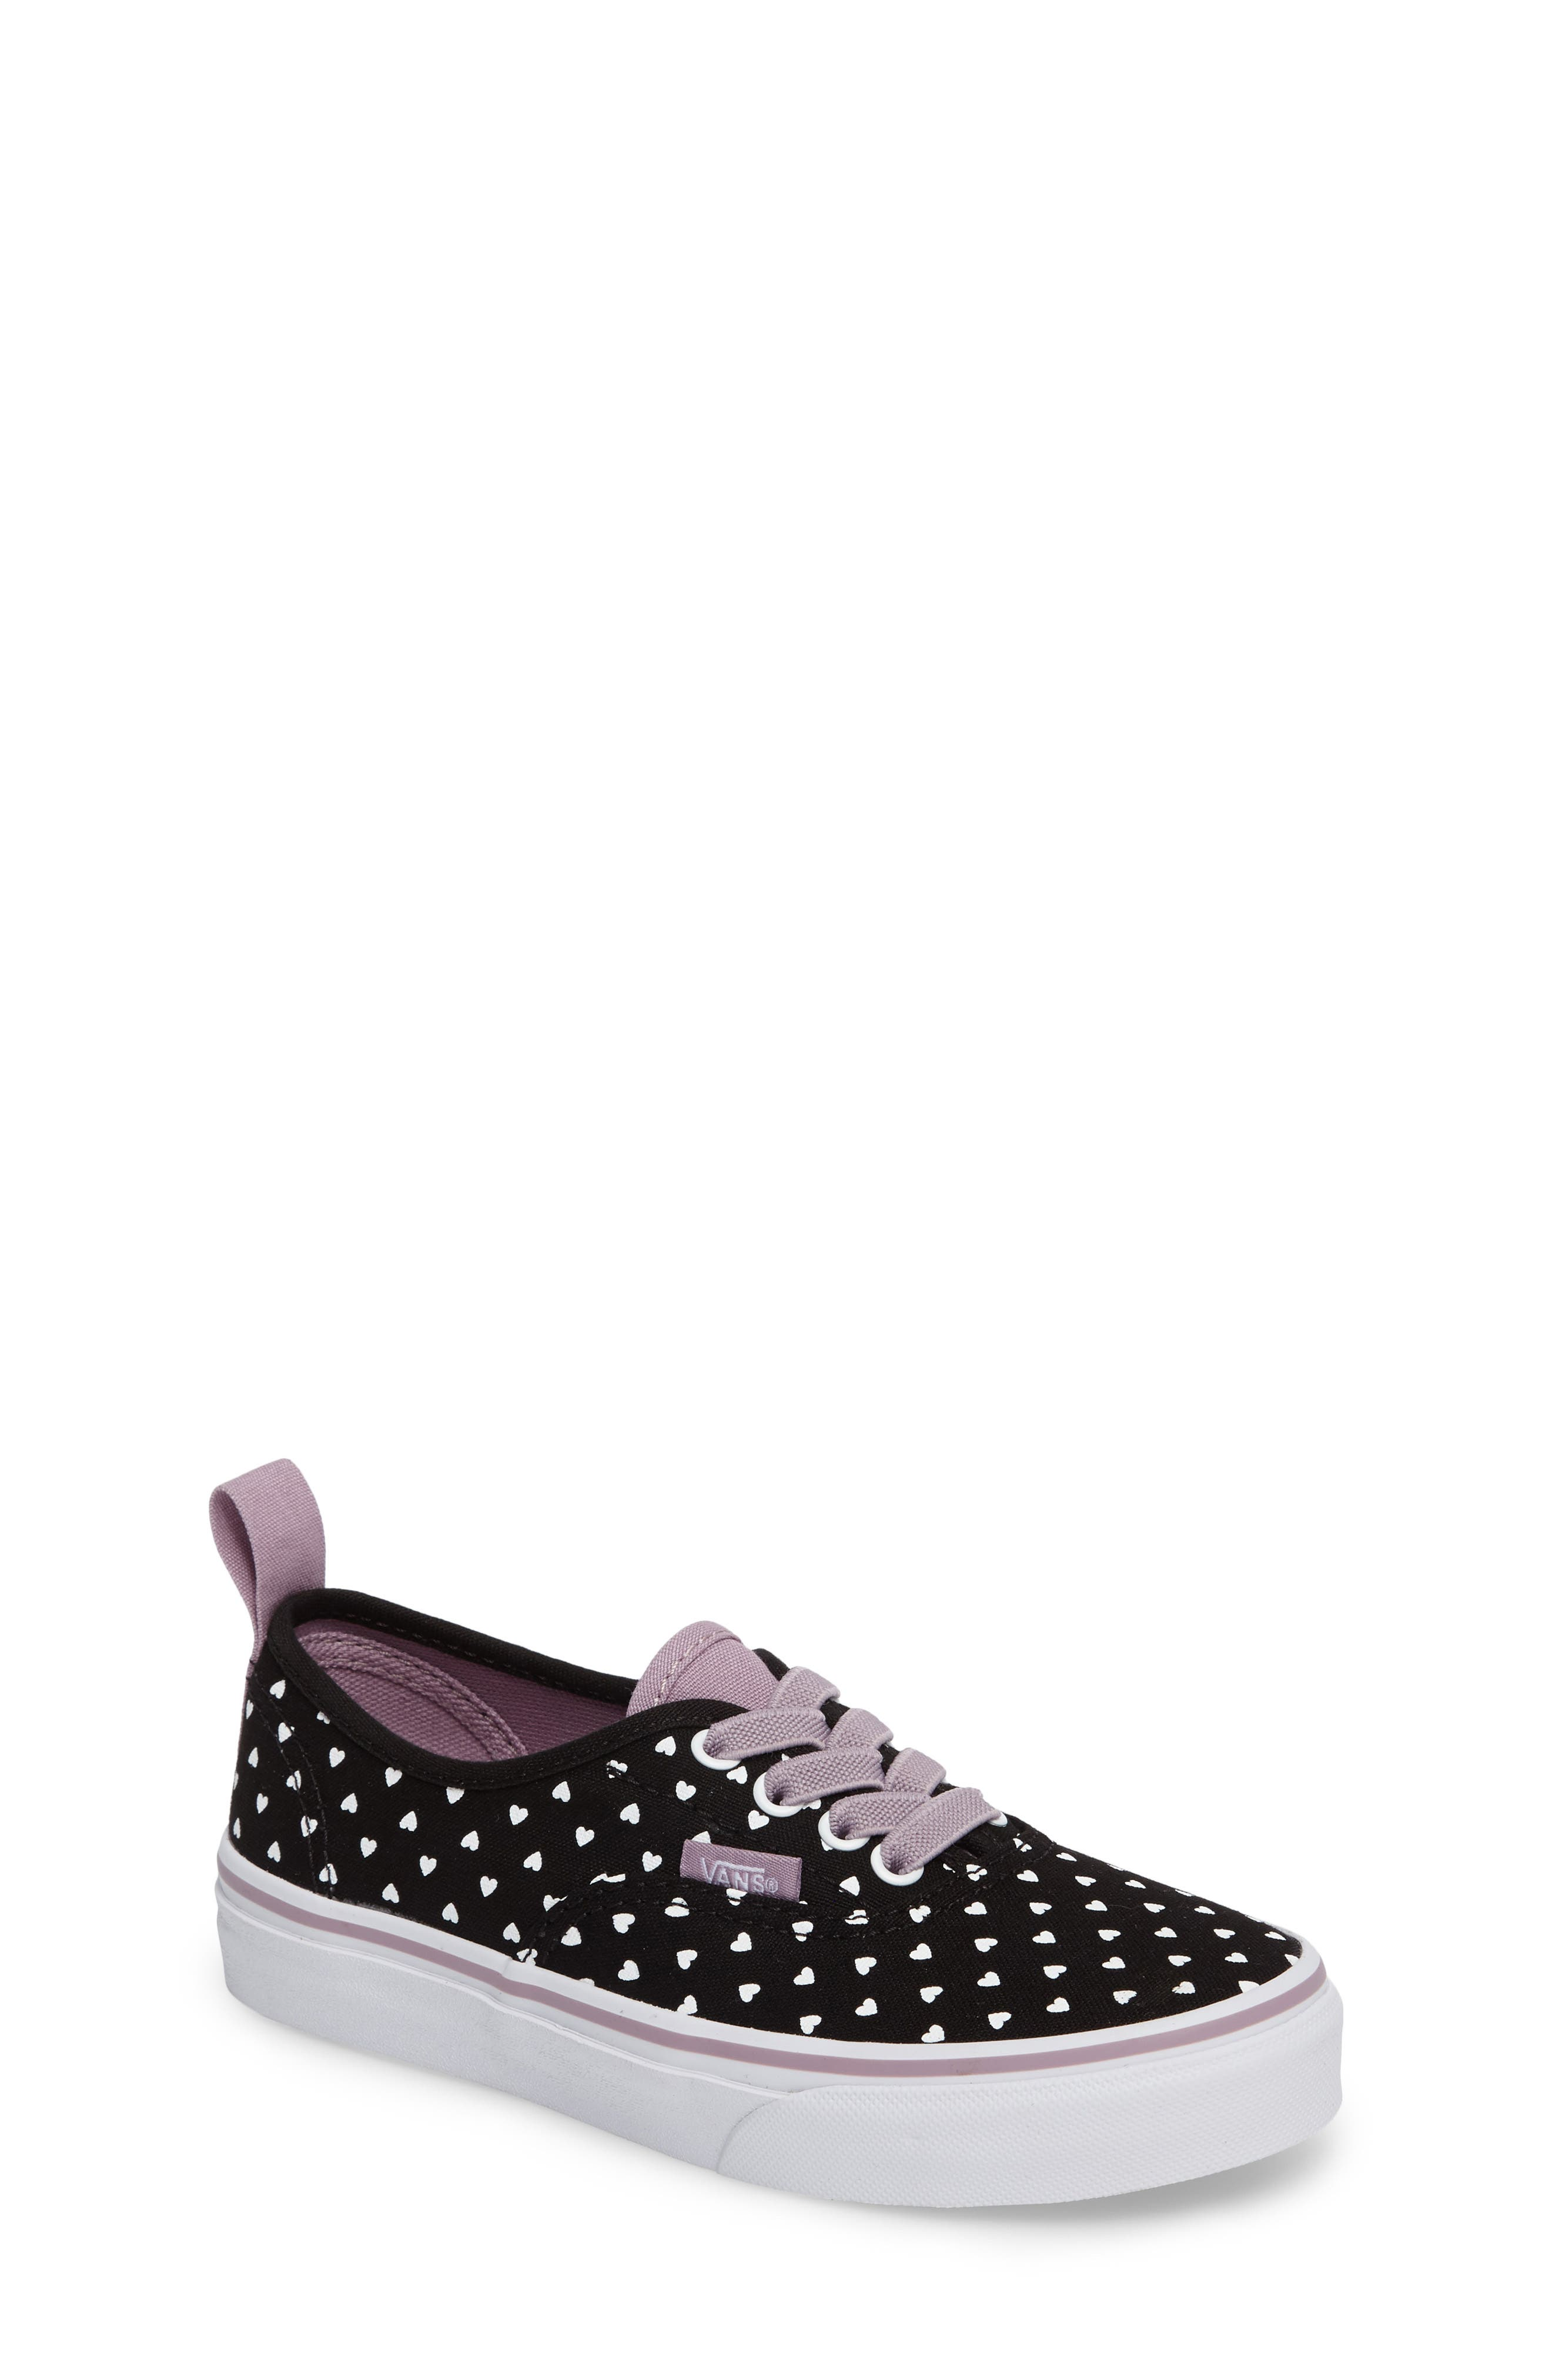 Main Image - Vans Authentic Elastic Lace Sneaker (Baby, Walker, Toddler, Little Kid & Big Kid)